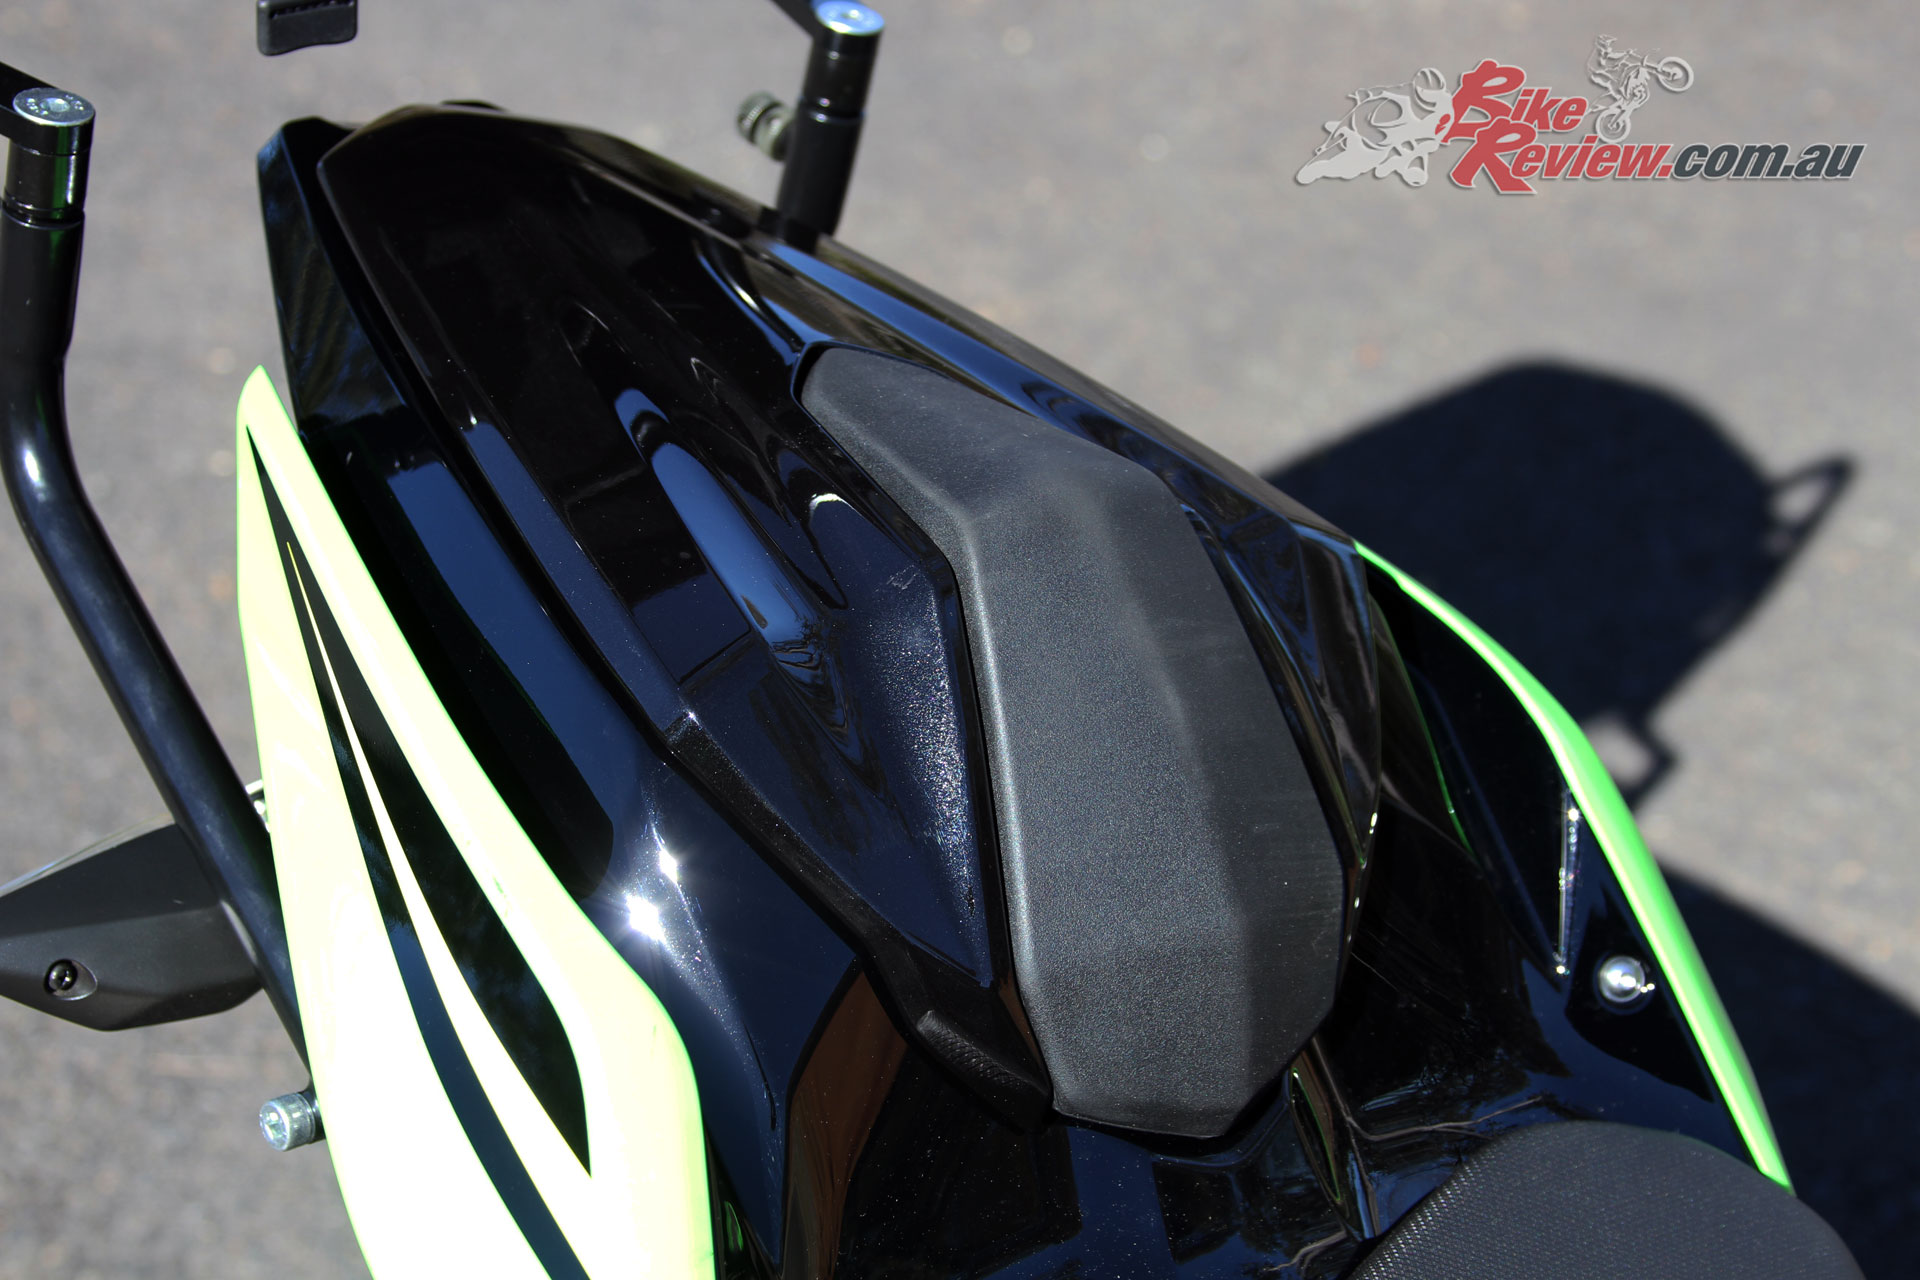 Genuine Kawasaki Seat Cowl on our Long Term Ninja 400